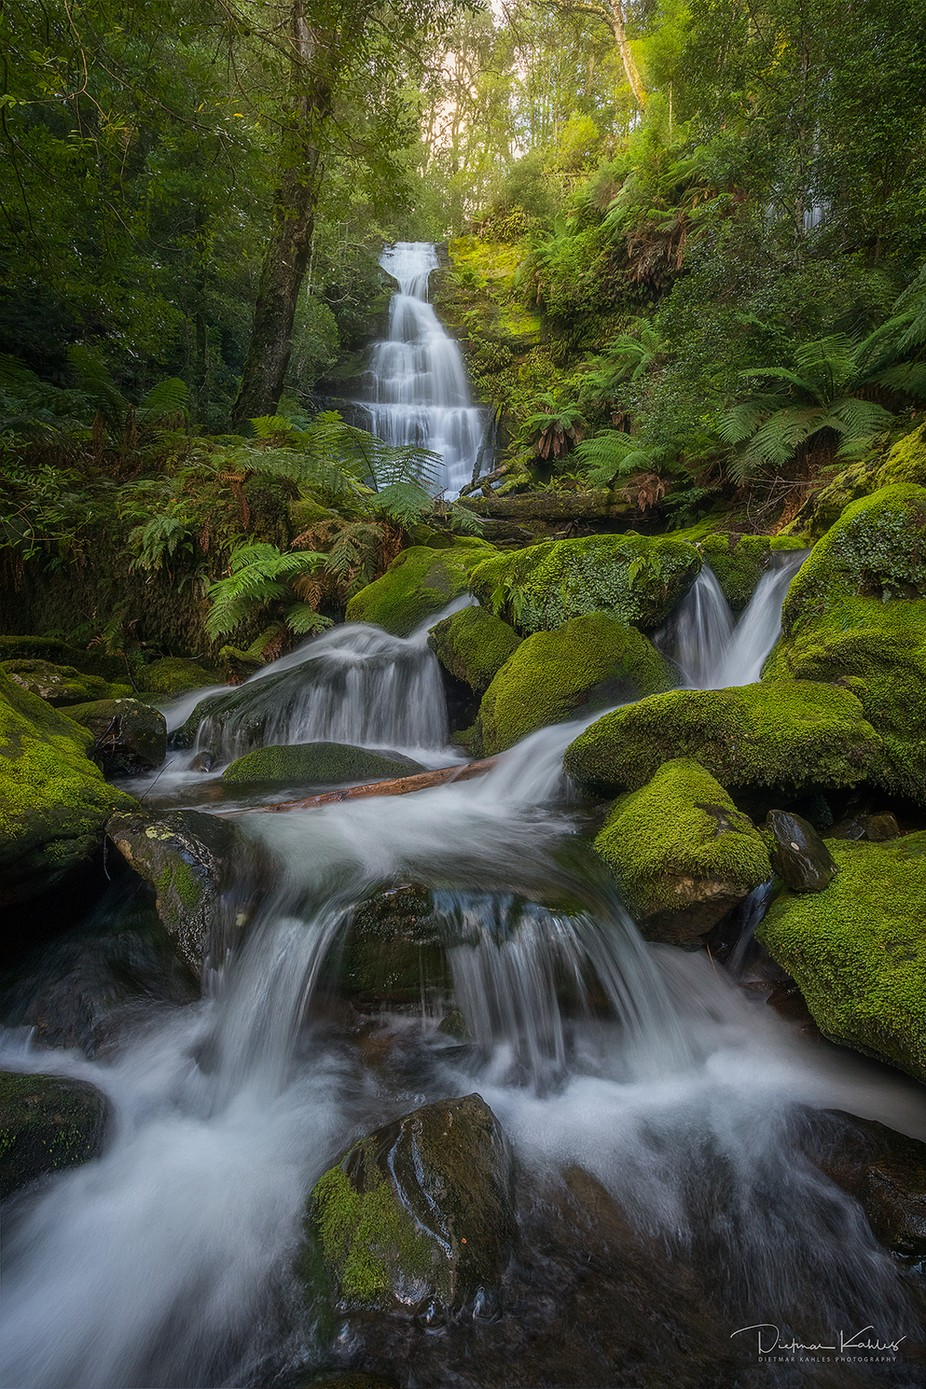 Bastion Cascades by lake_of_tranquility - The Natural Planet Photo Contest